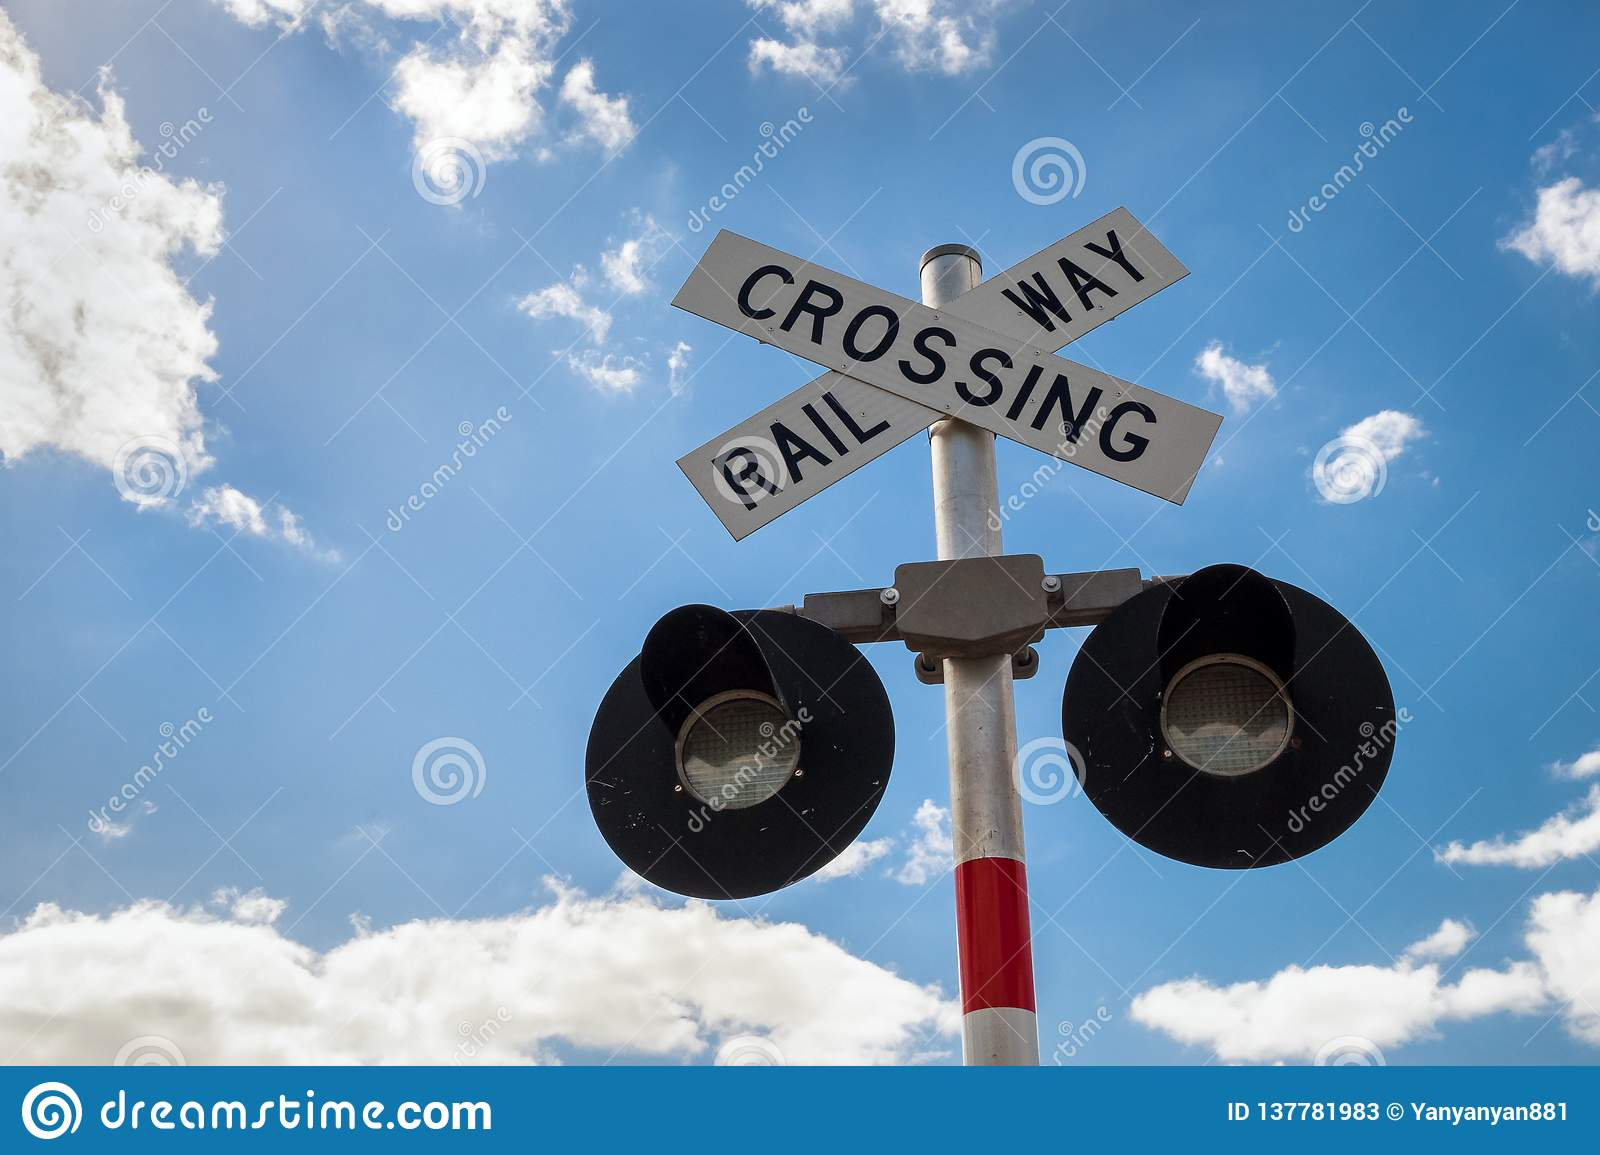 Railroad Crossing Sign with blue clear sky and white clouds. Railway crossing sign with flashing lights